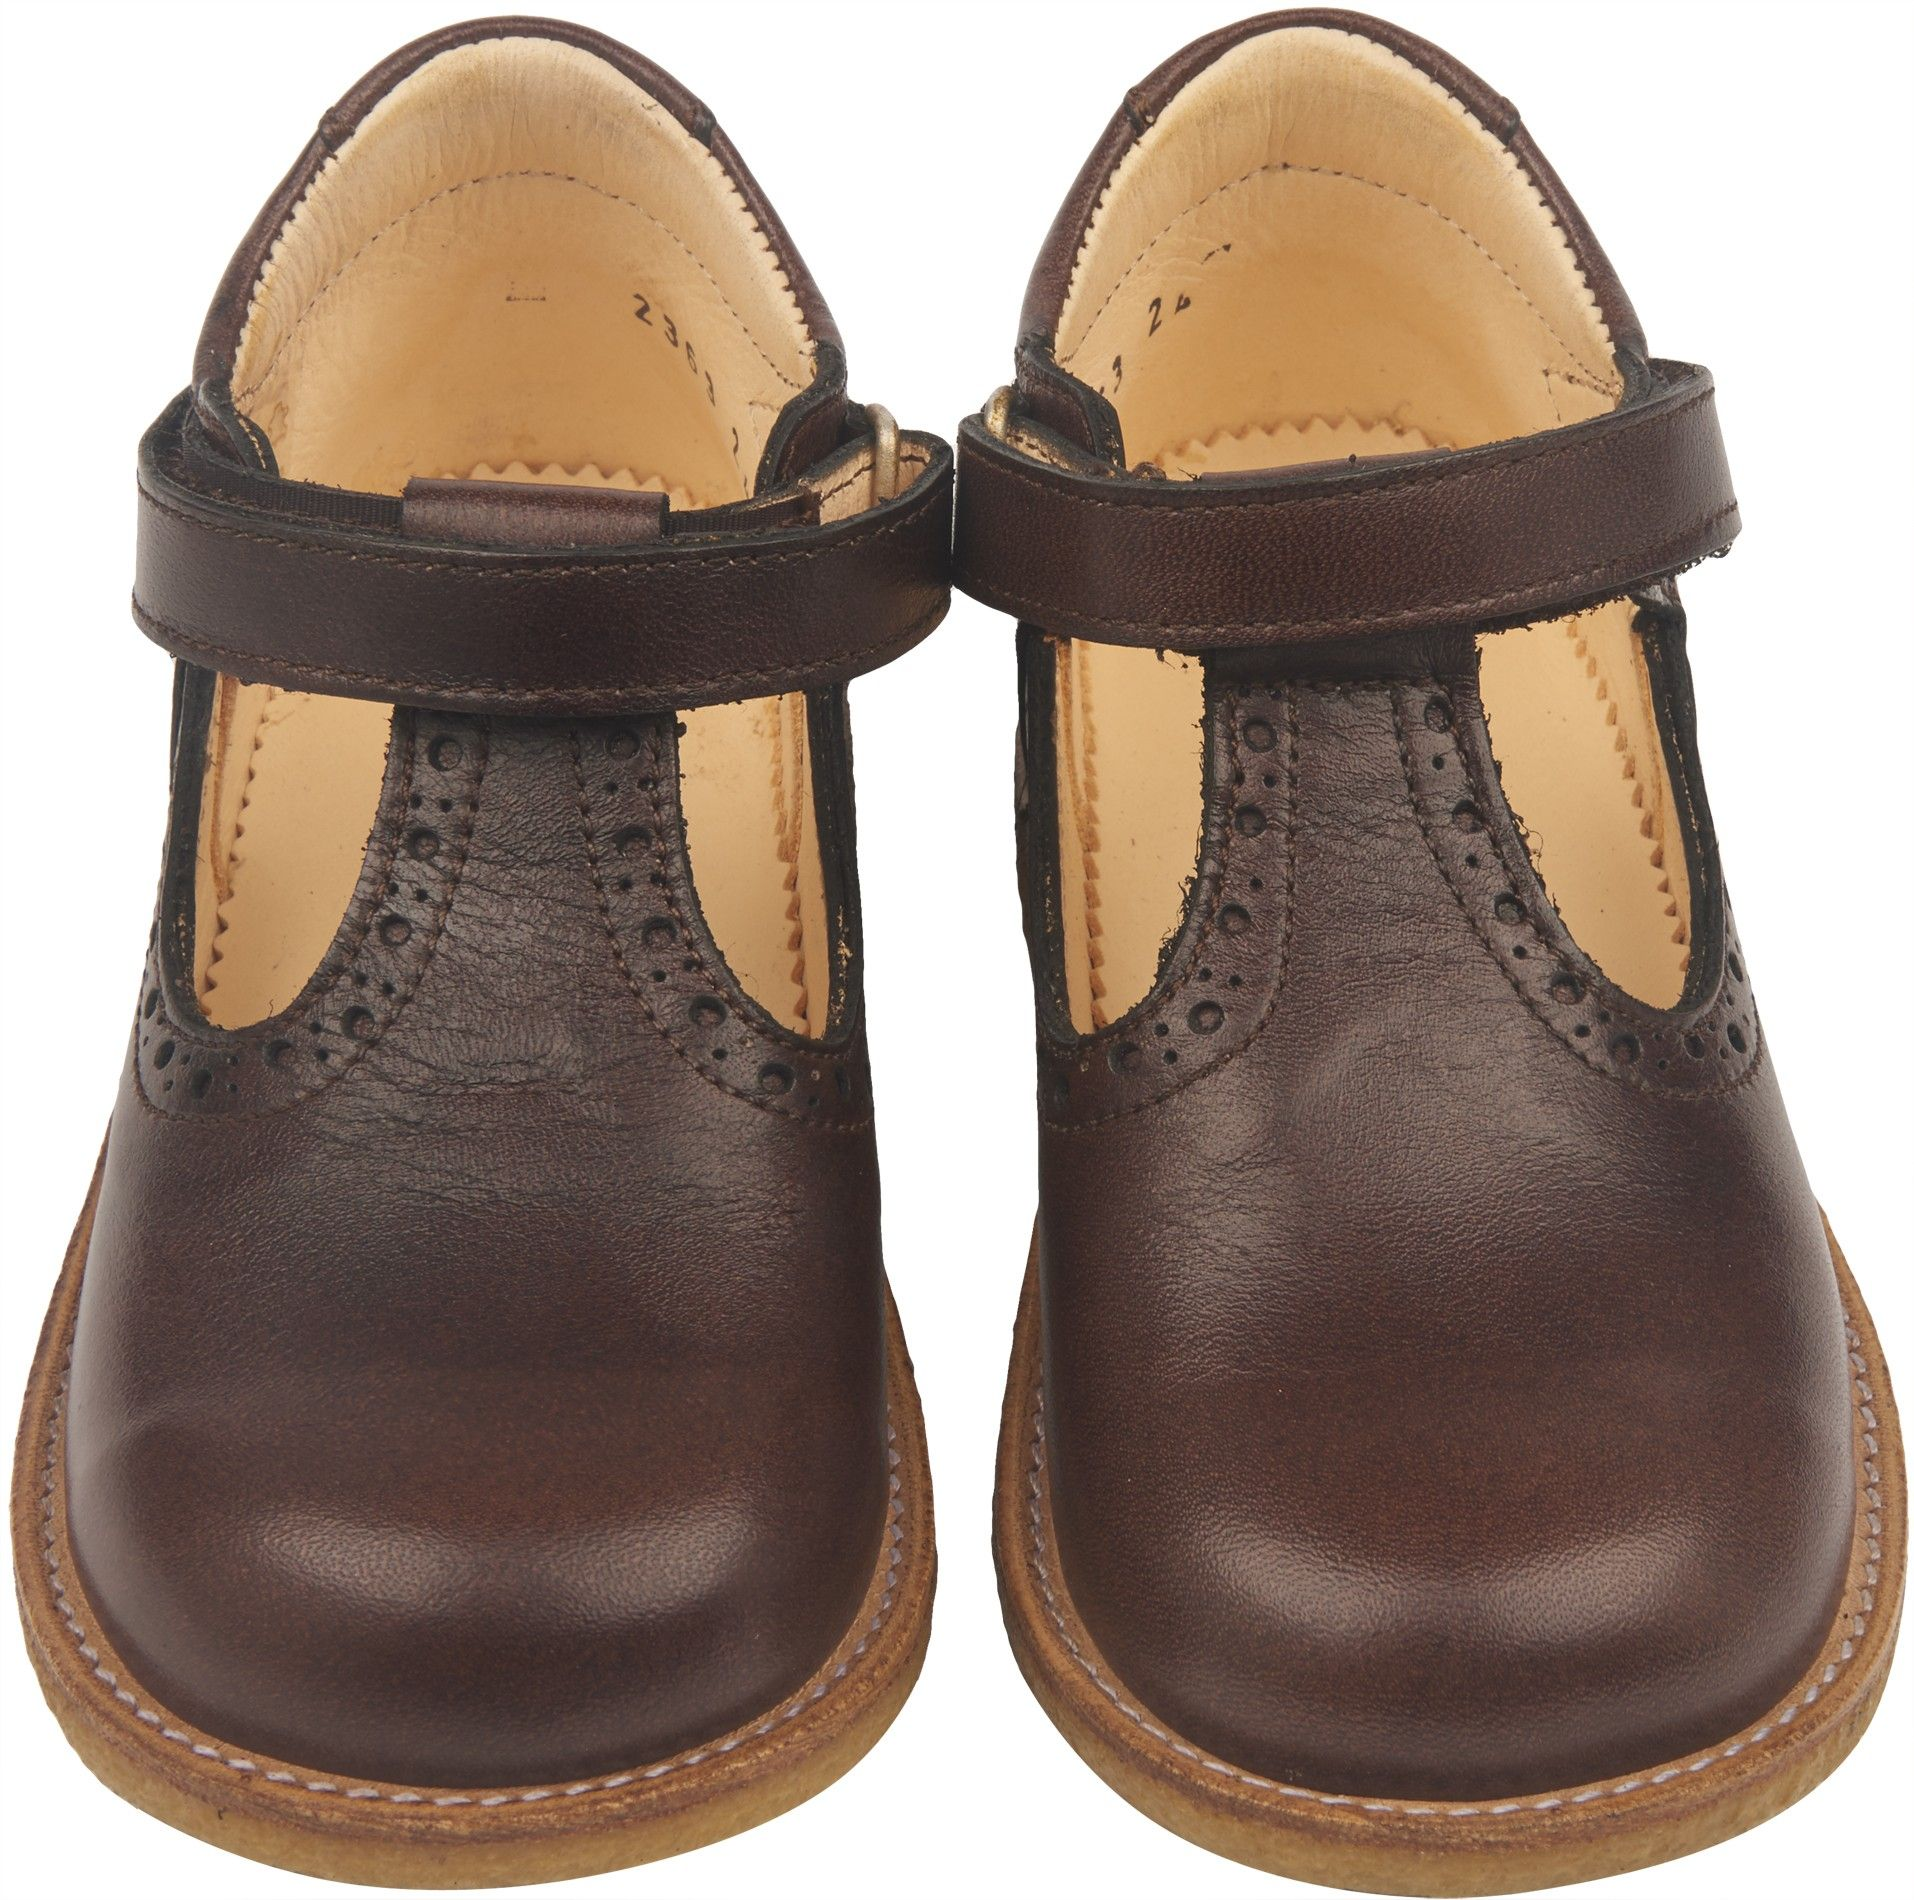 SALE NOW ON Shop The Angulus Girls T Bar Baby Shoes In Brown